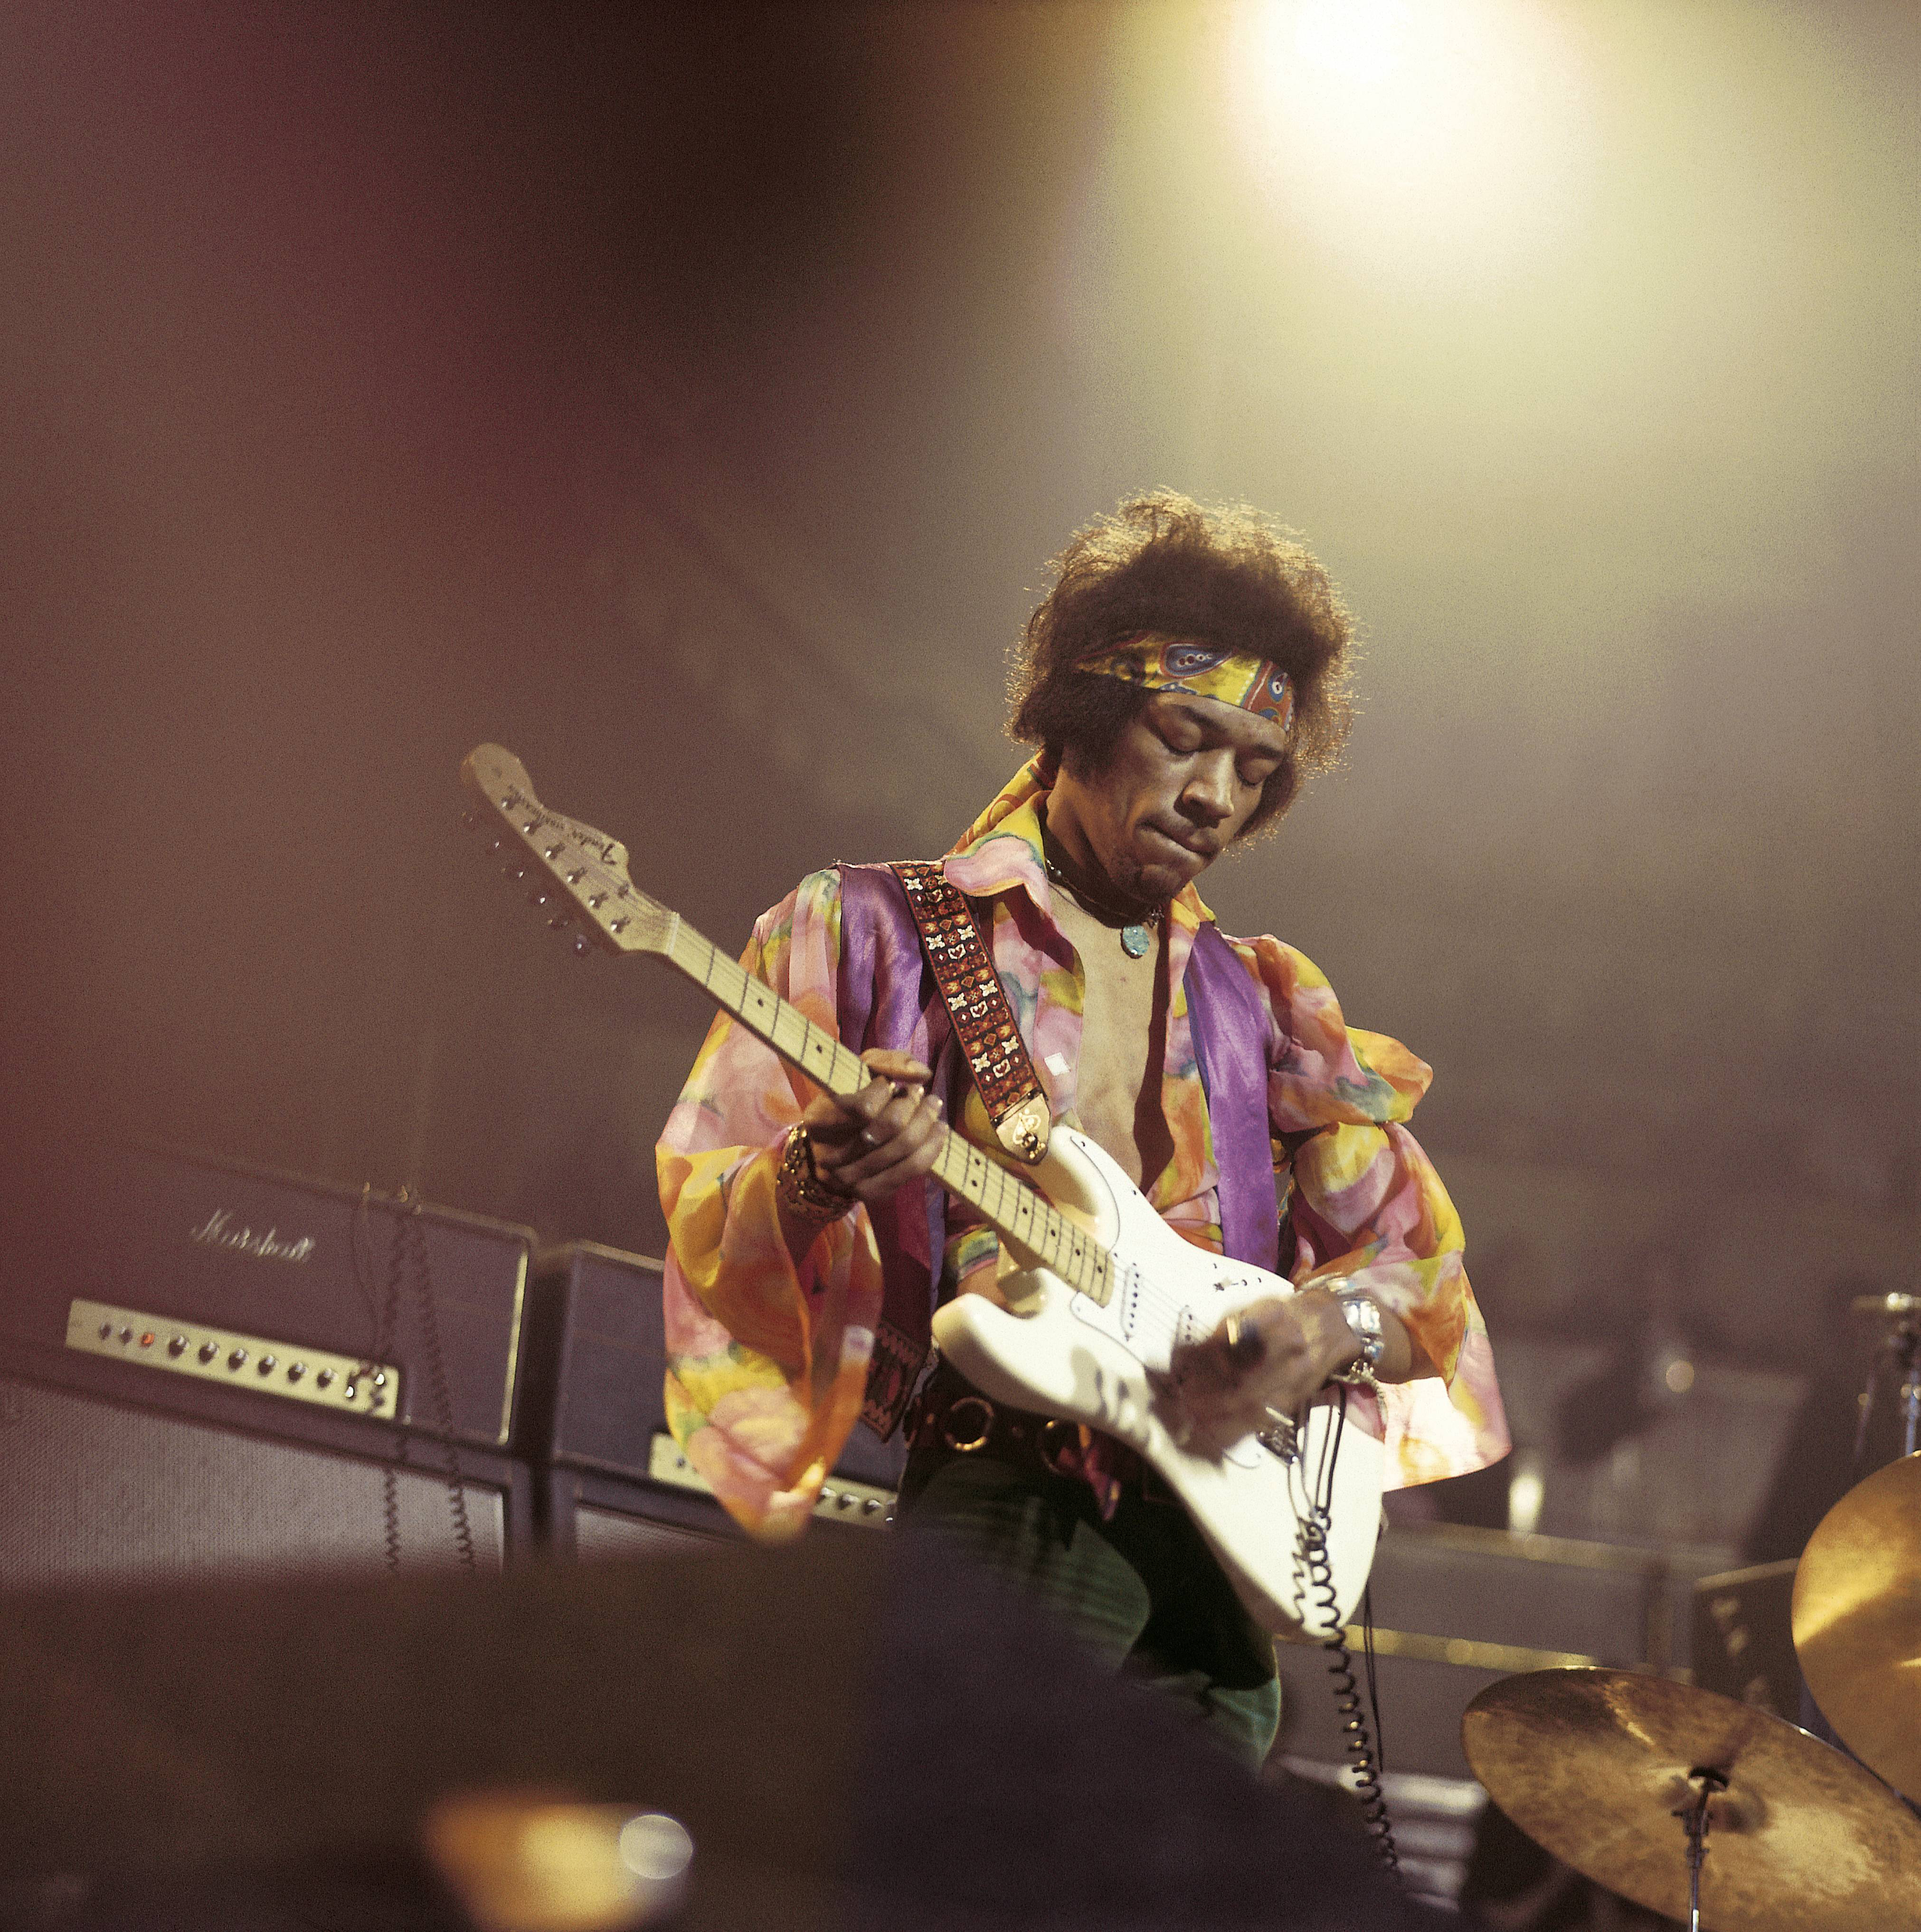 Jimi Hendrix The greatest of all time? Maybe. No one merged the blues, rock and psychedelia with as much ease or wielded a guitar with as much charisma.